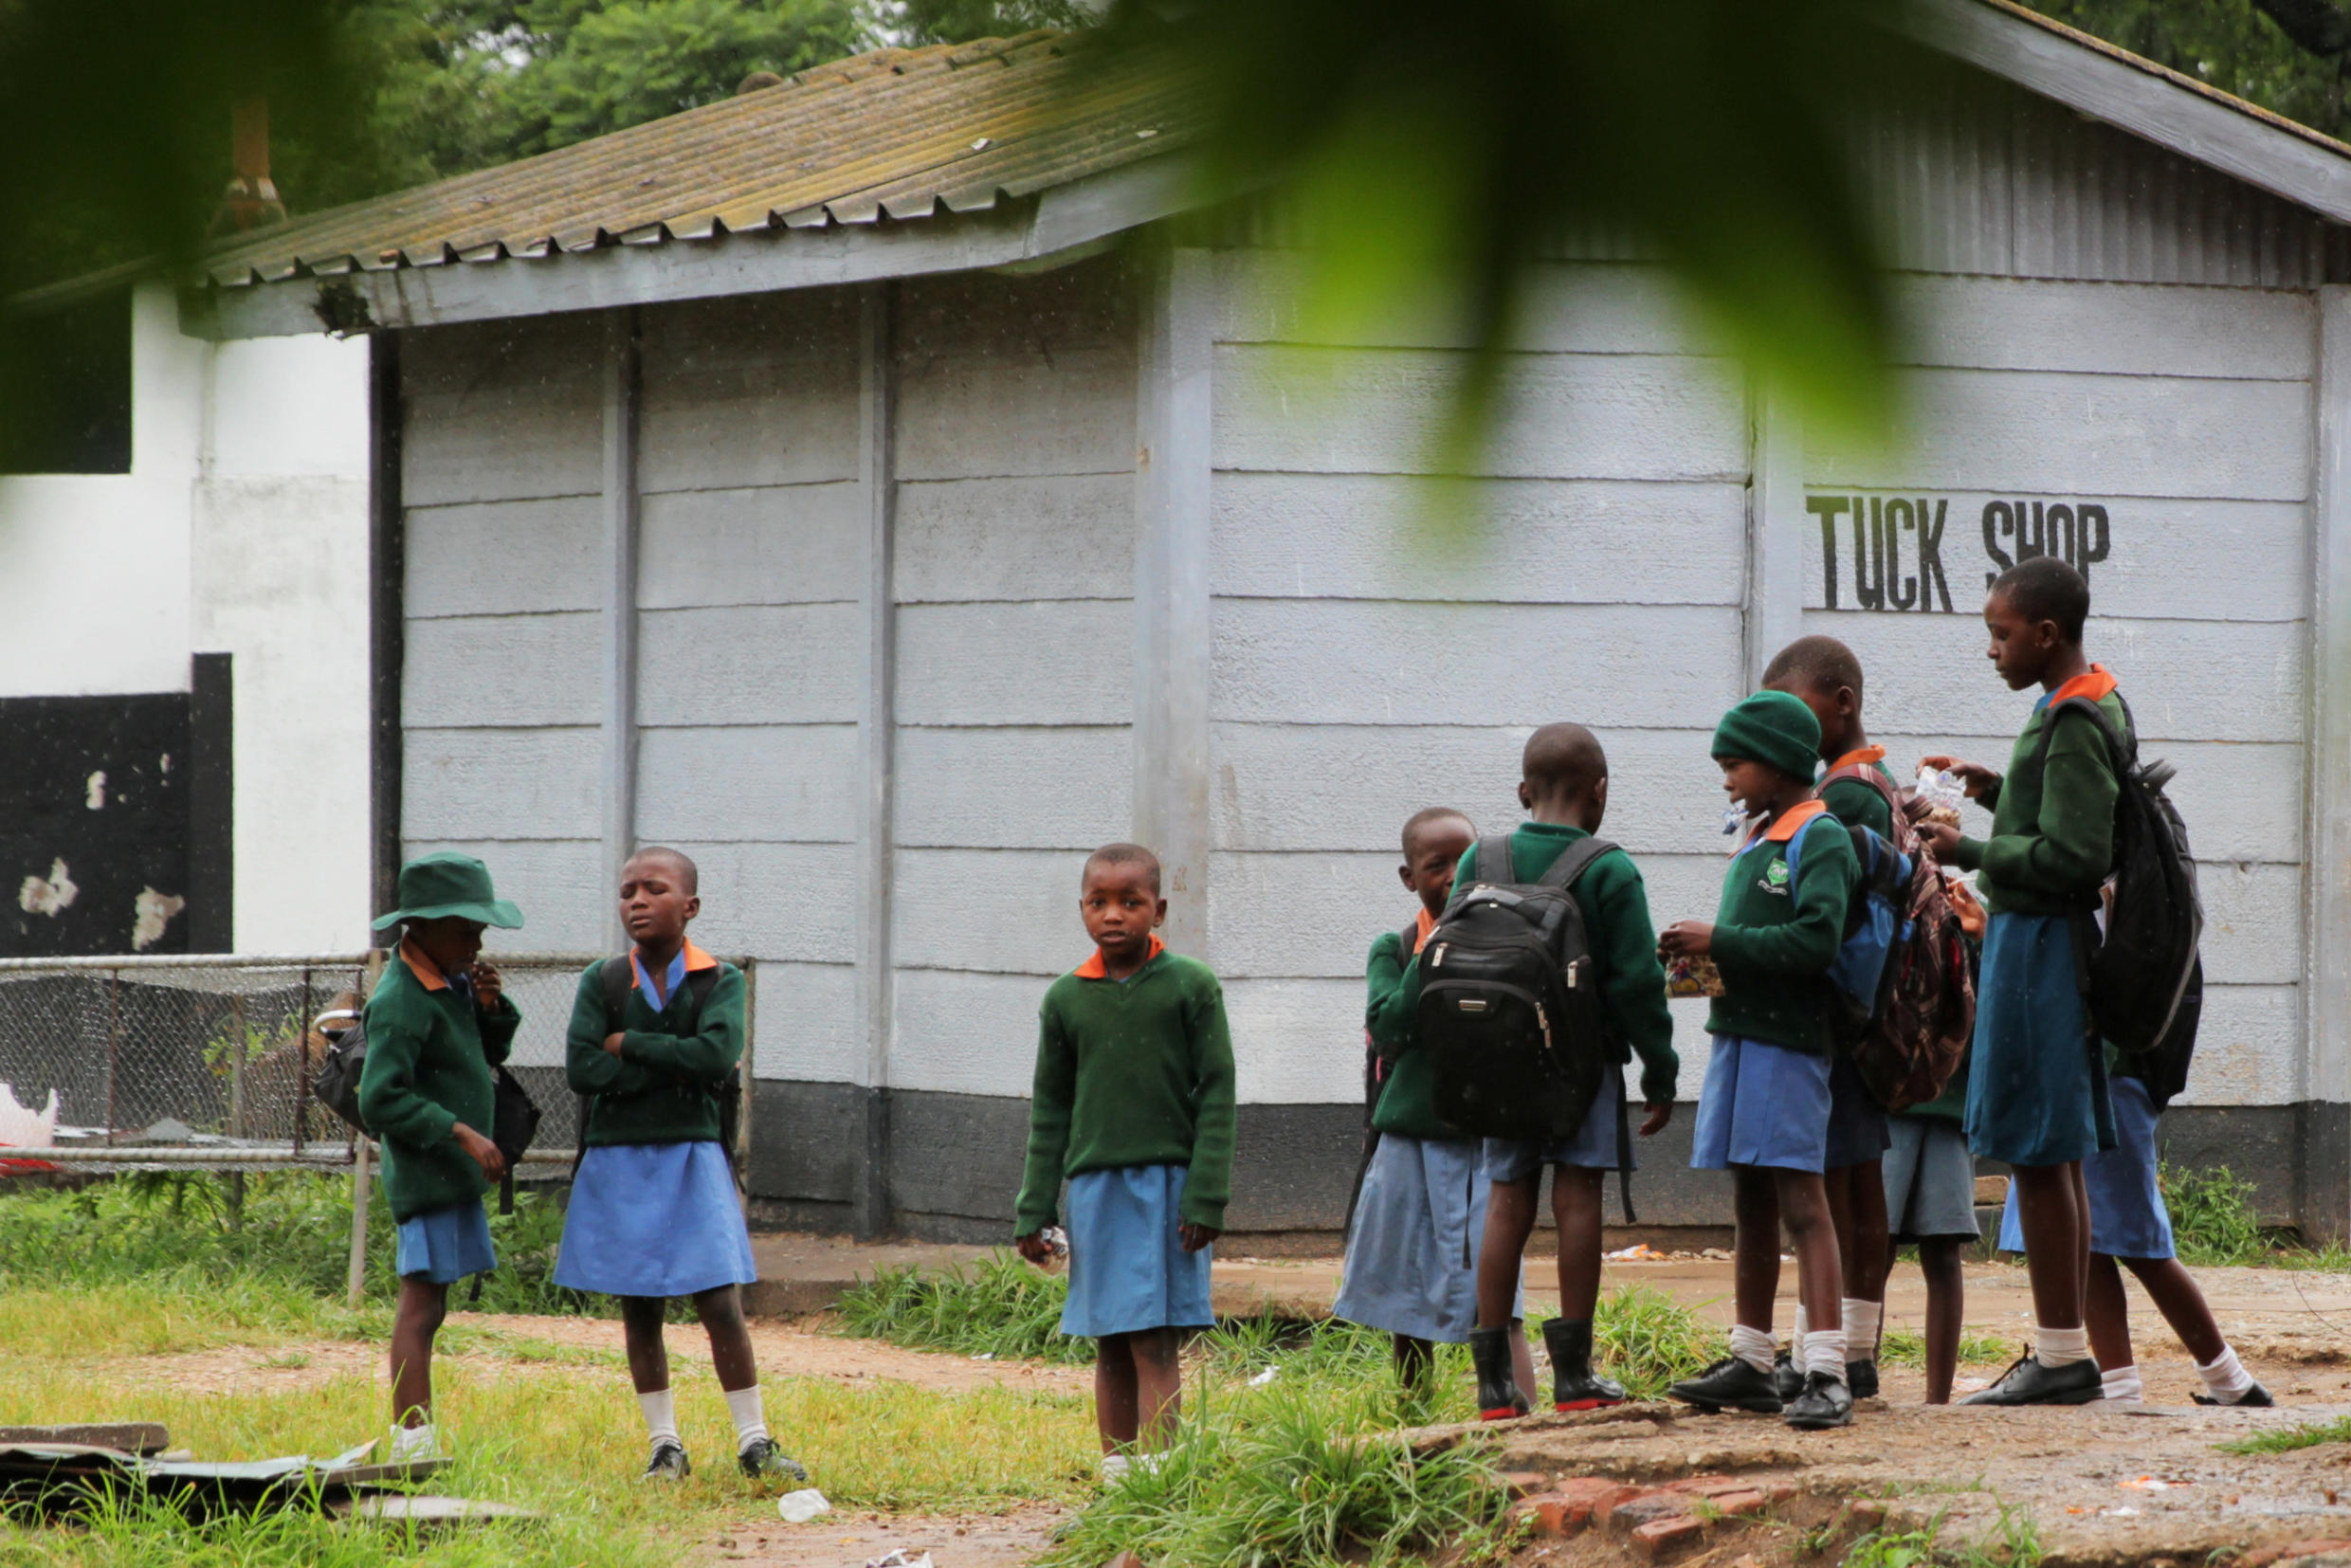 Pupils stand outside classrooms at a government school in the capital city of Harare, Zimbabwe, February 5, 2019